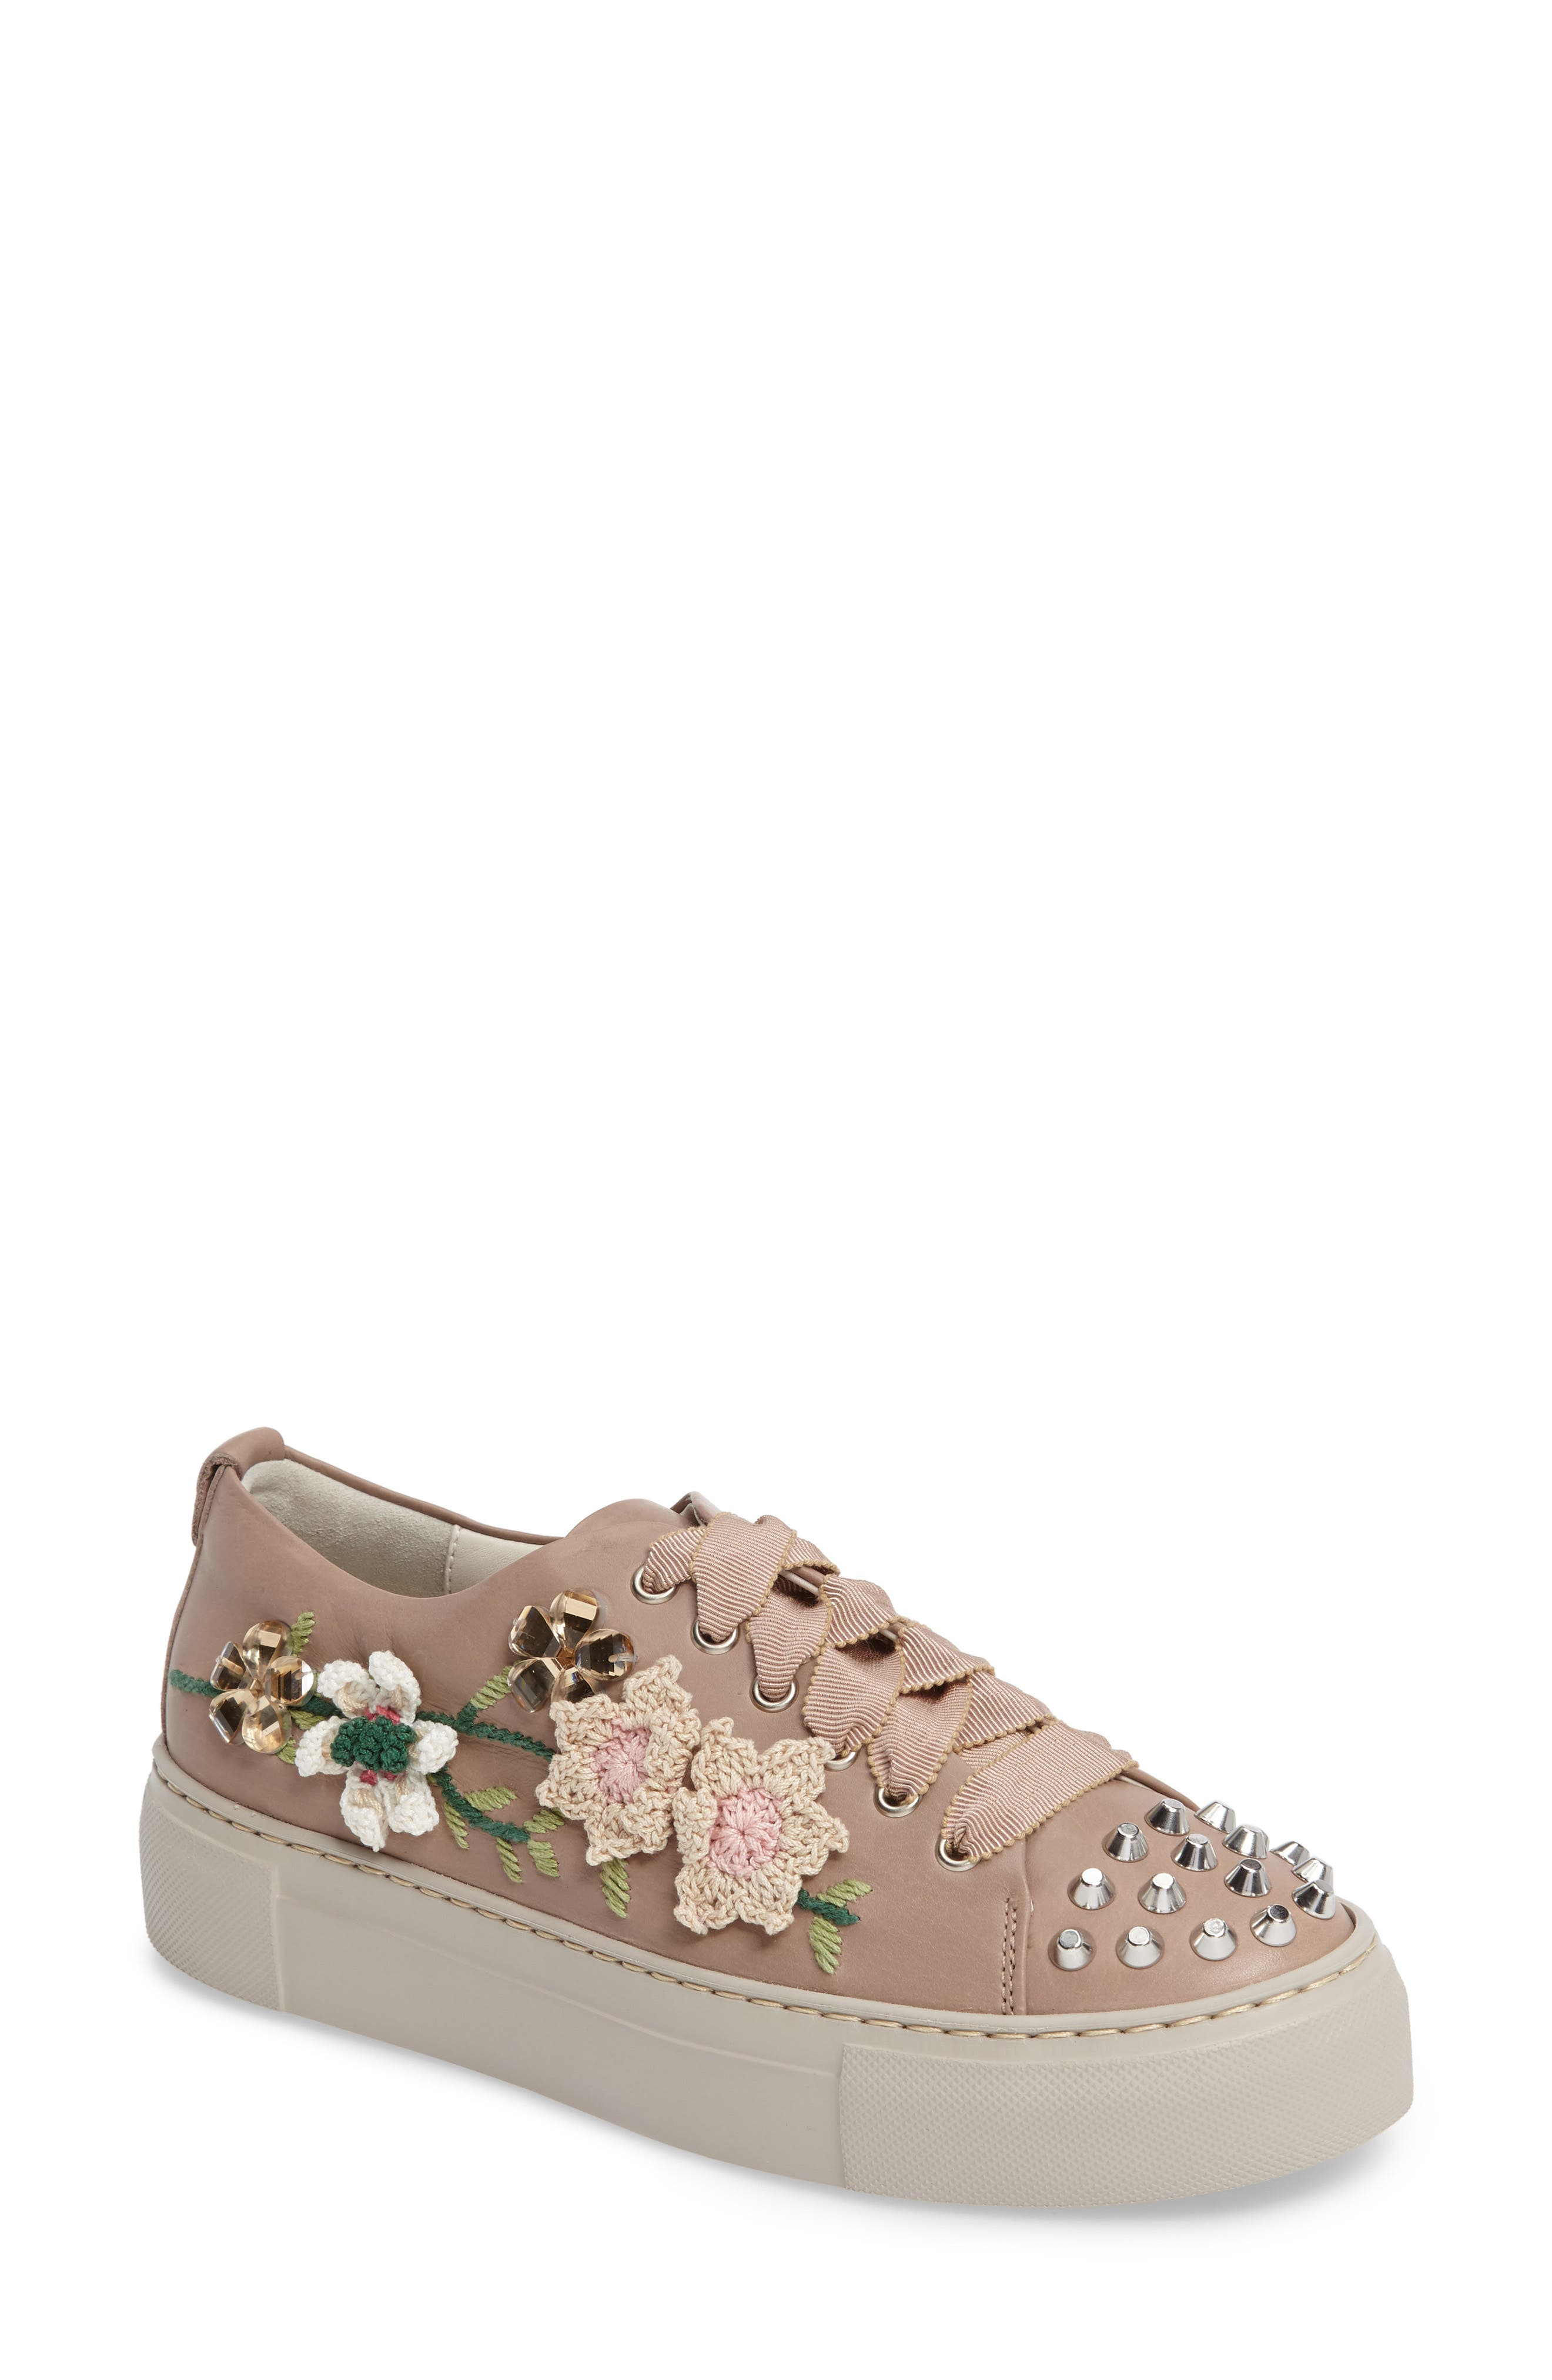 Flower Embellished Sneaker,                             Main thumbnail 1, color,                             260